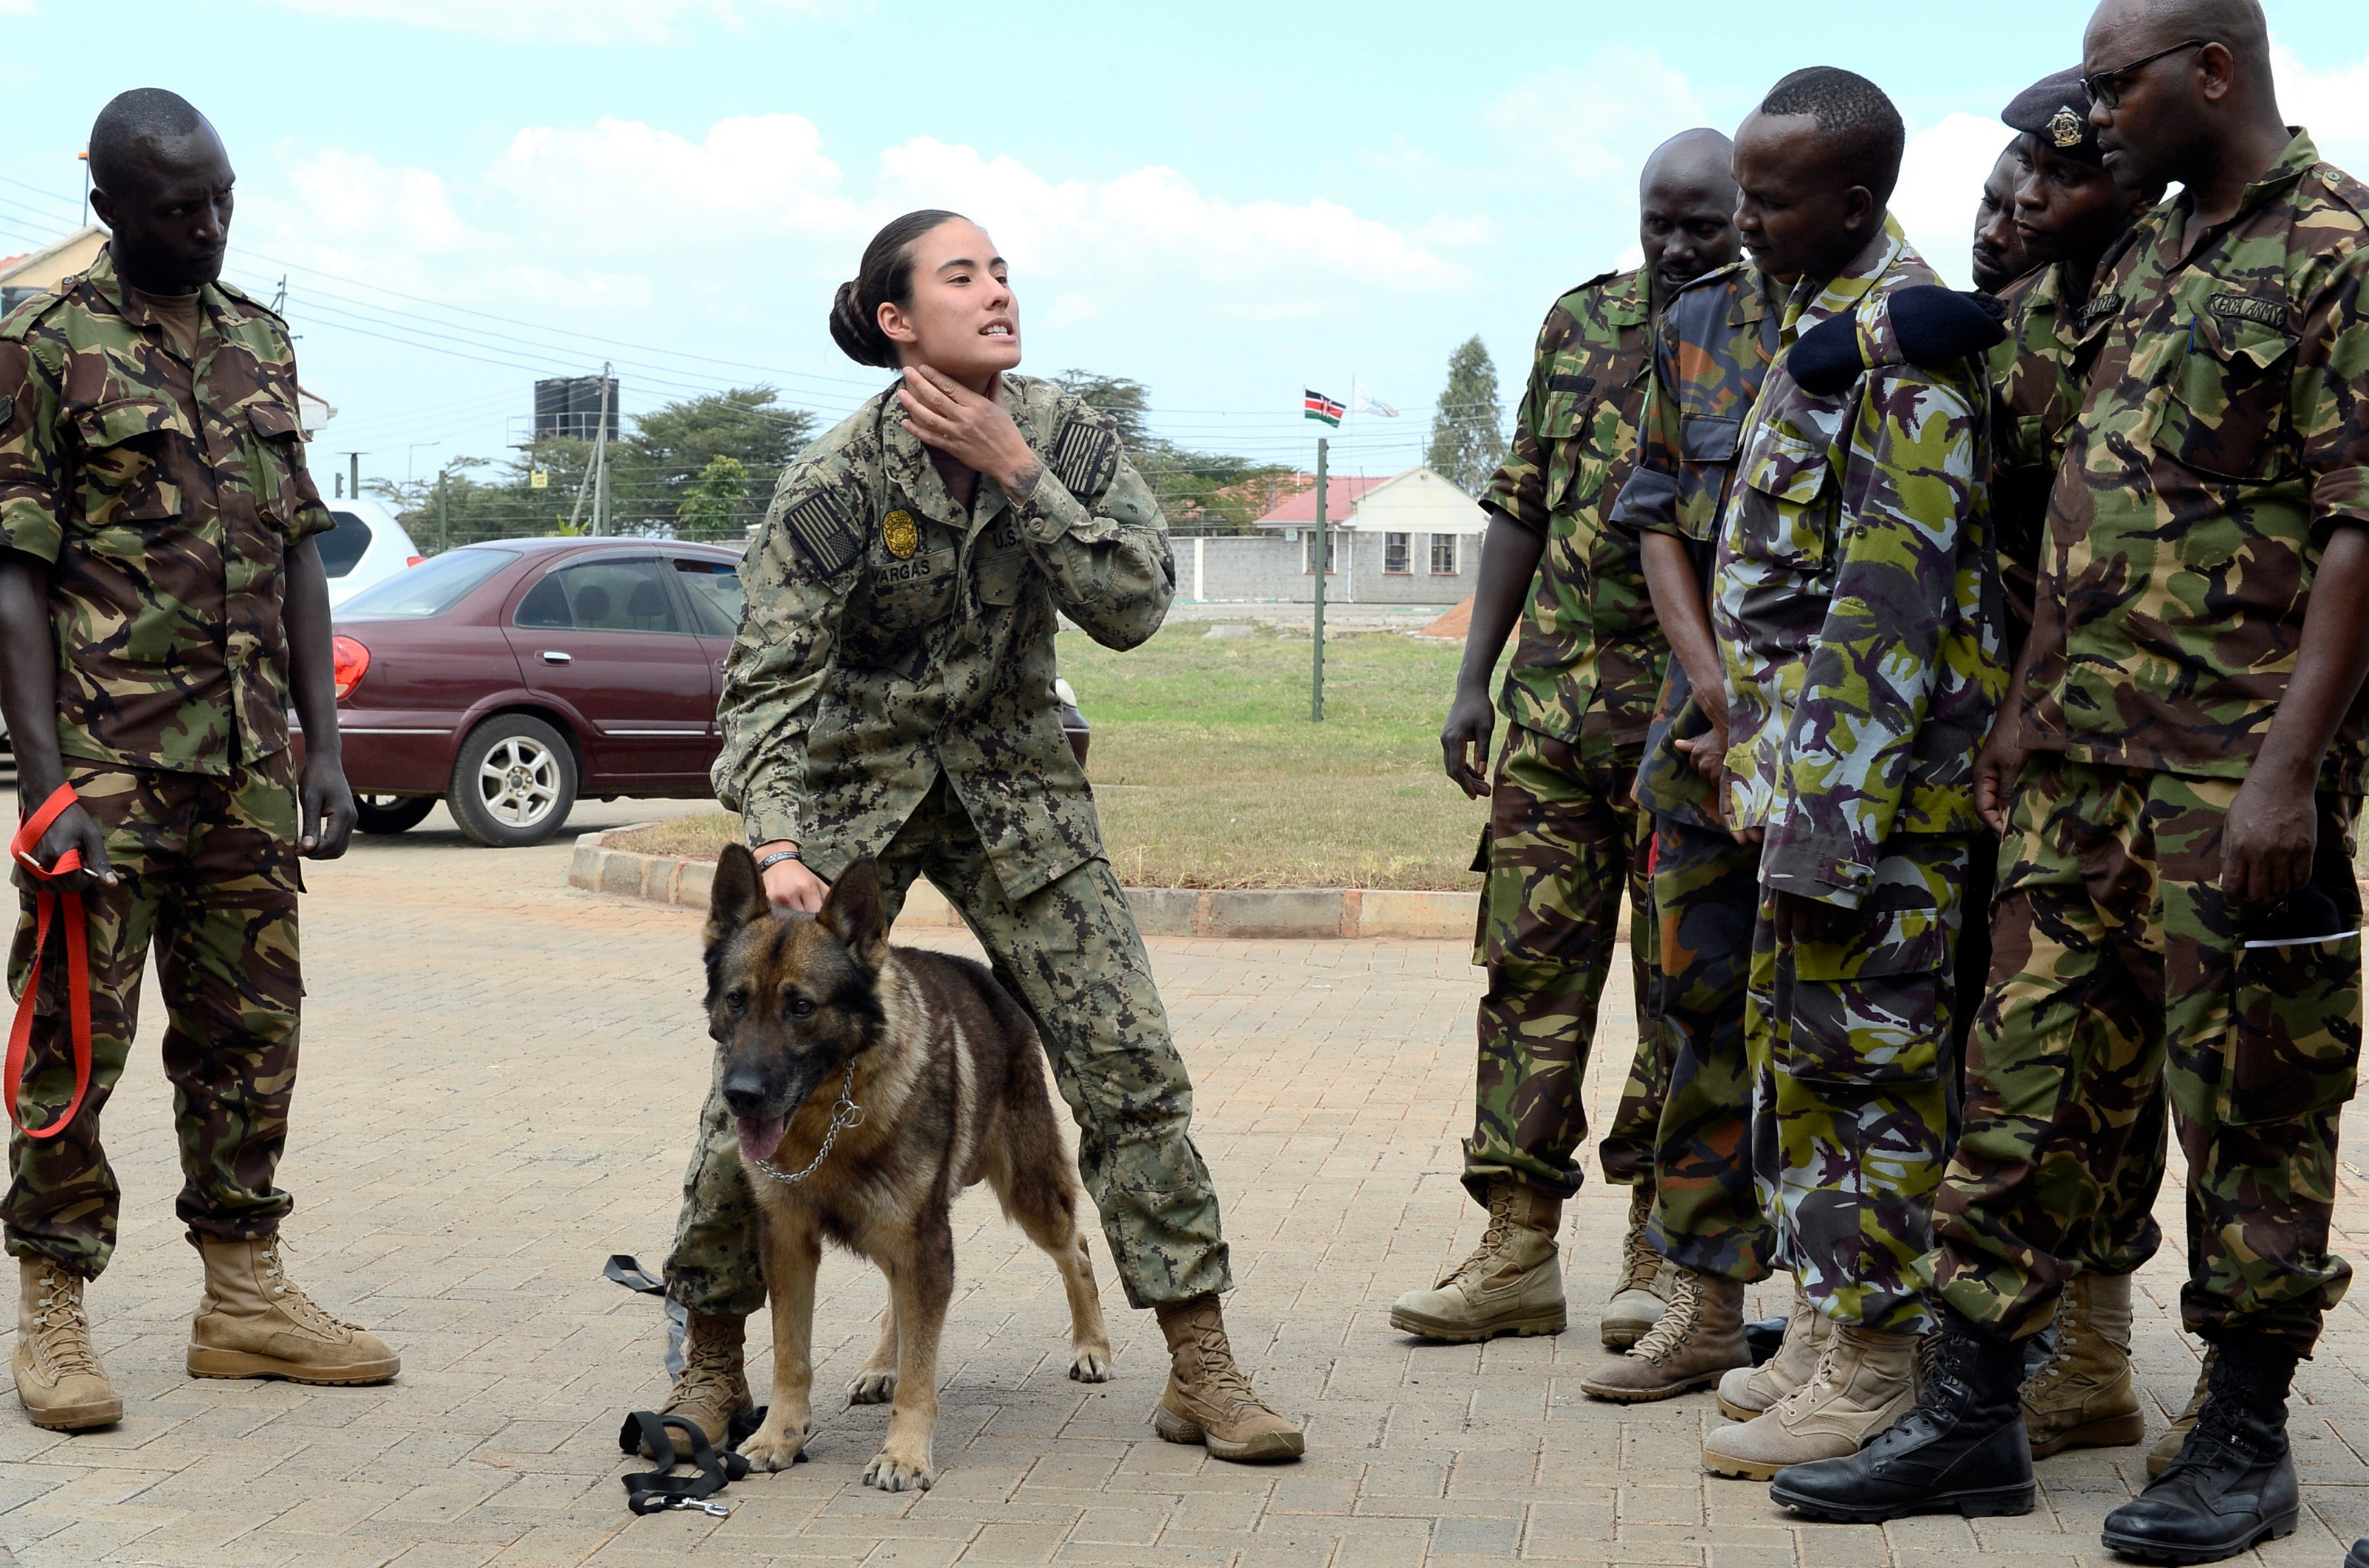 Master at Arms 1st Class Kristina Vargas, the Kennel Master assigned to Camp Lemonnier, explains the importance of properly applying a collar on a military working dog  for members of the Kenyan Defense Force's 1st Canine Regiment during a  knowledge exchange, in Nairobi, Kenya, August 8, 2018. The exchange gave a chance for American and Kenyan forces to learn and work with each other to have a better understanding of each other's capabilities. (U.S. Navy Photo by Mass Communication Specialist 2nd Class Timothy M. Ahearn)